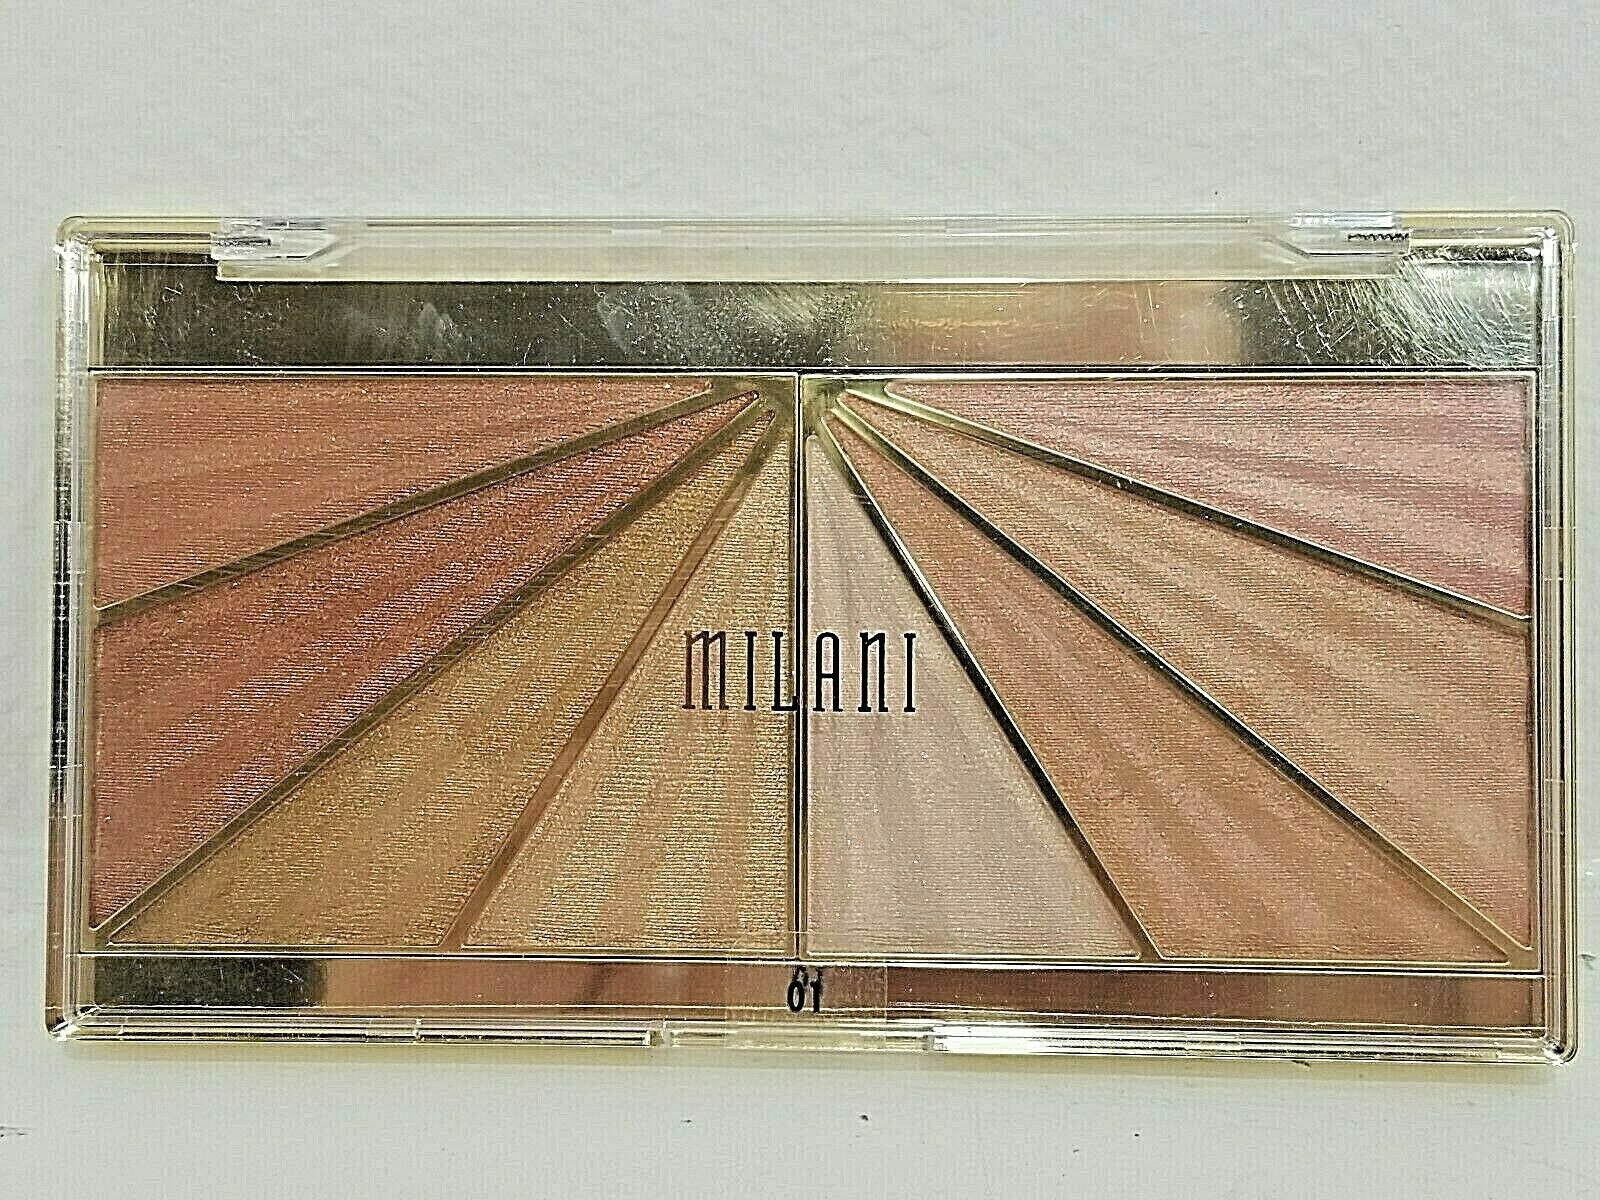 Milani 01 Luminoso Glow Shimmering Face Palette New Sealed Package - $12.85